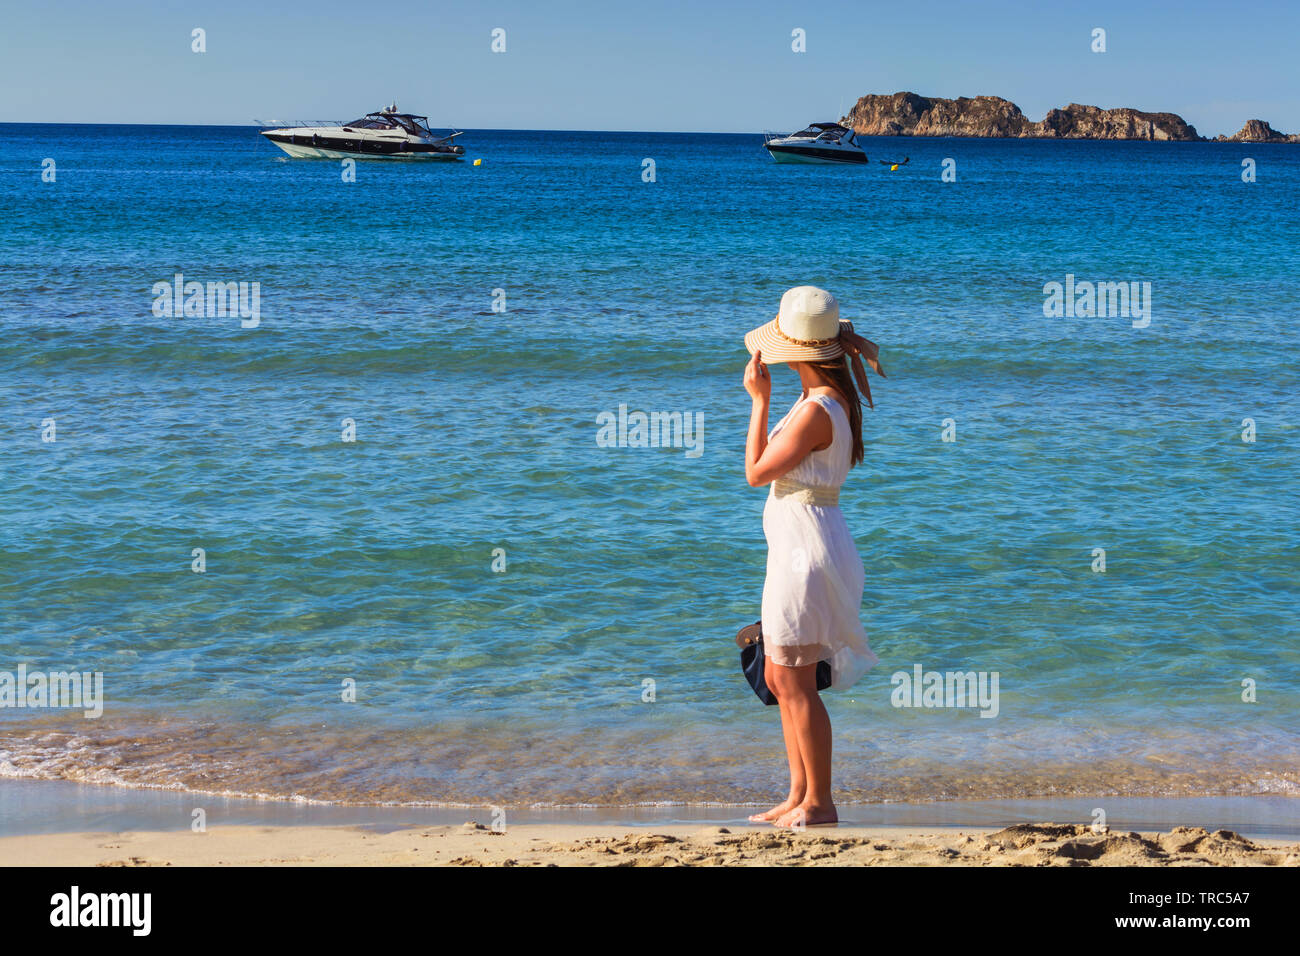 Young trendy woman relax on the beach. Happy island lifestyle. Holiday in paradise. In Hindergrund beach blue sky, crystal clear sea and two luxury mo - Stock Image